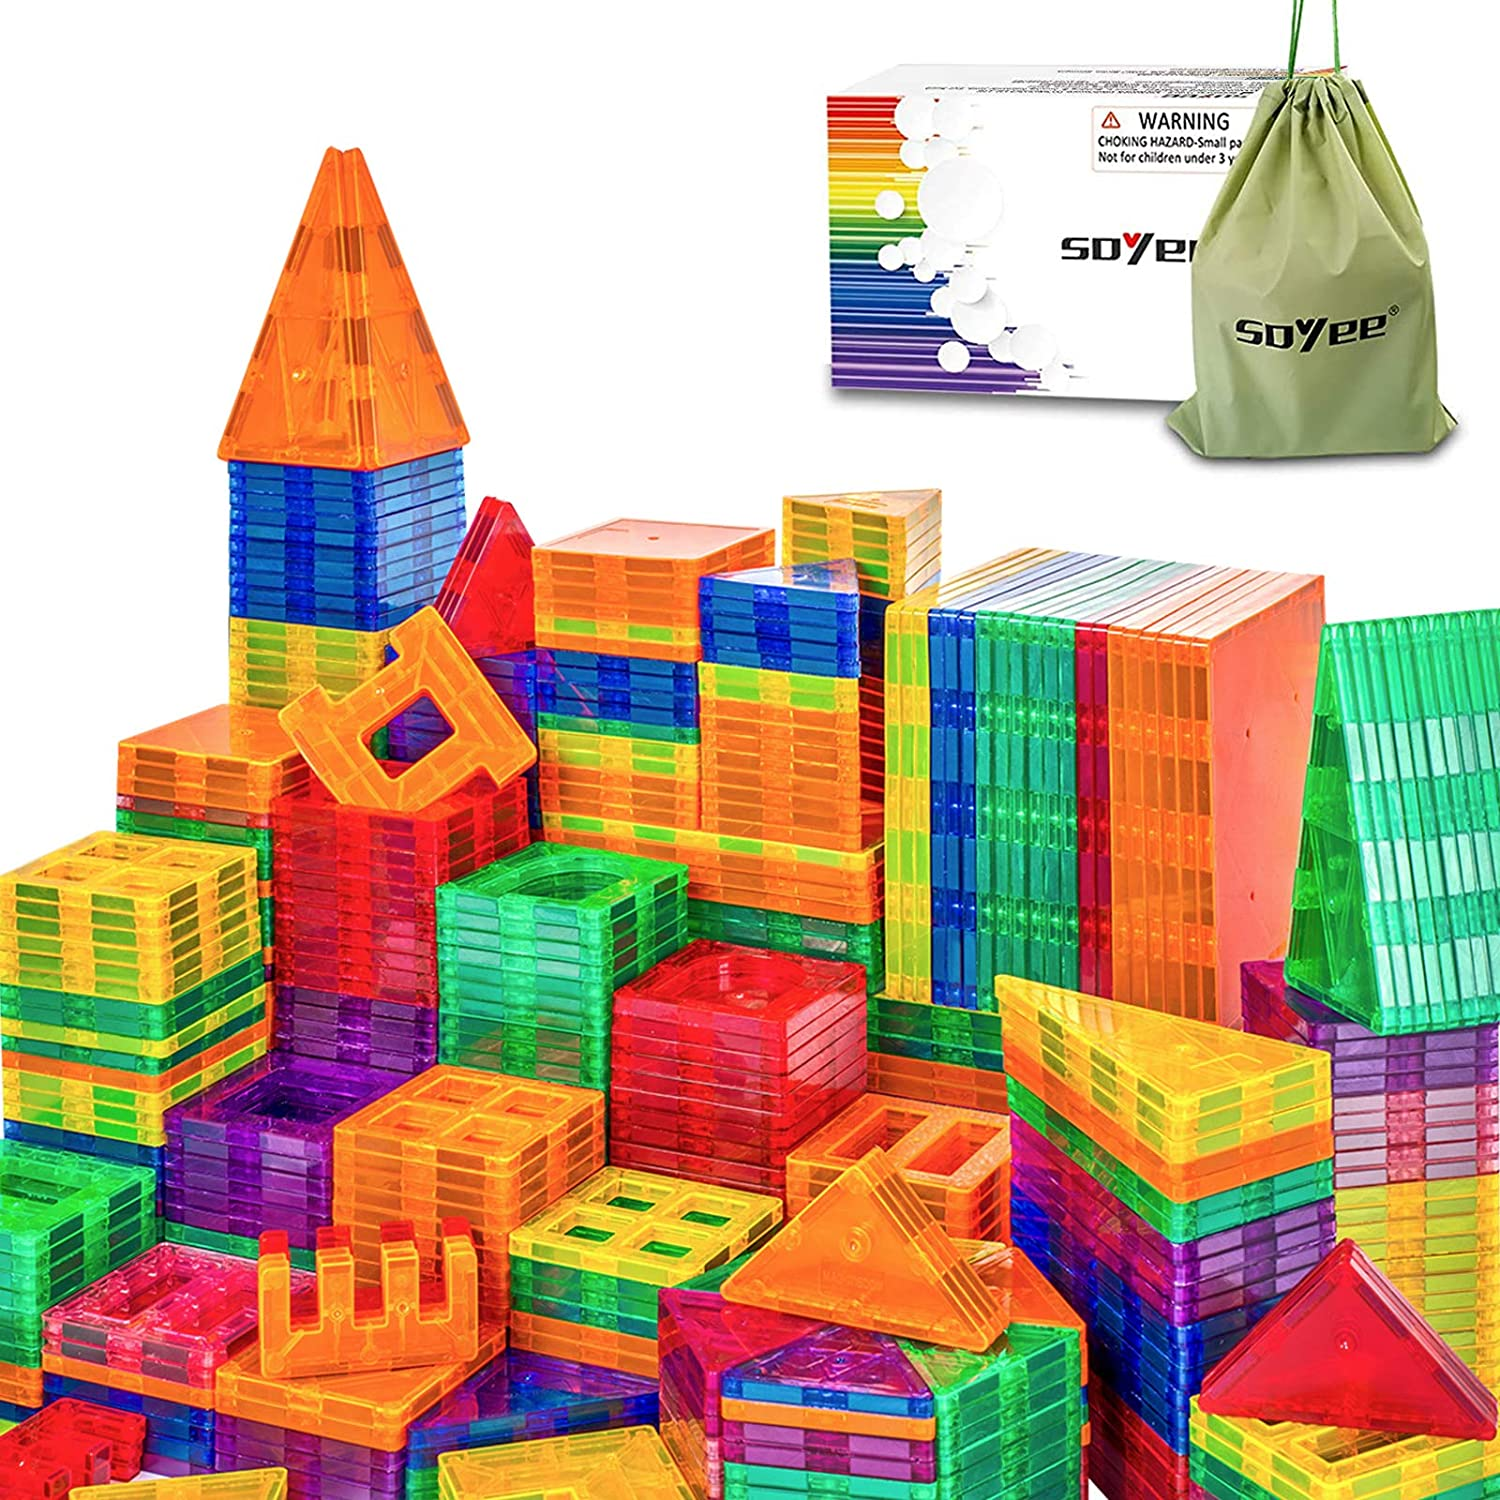 Magnetic tiles That Can Nurture Your Child's Imagination And Creativity